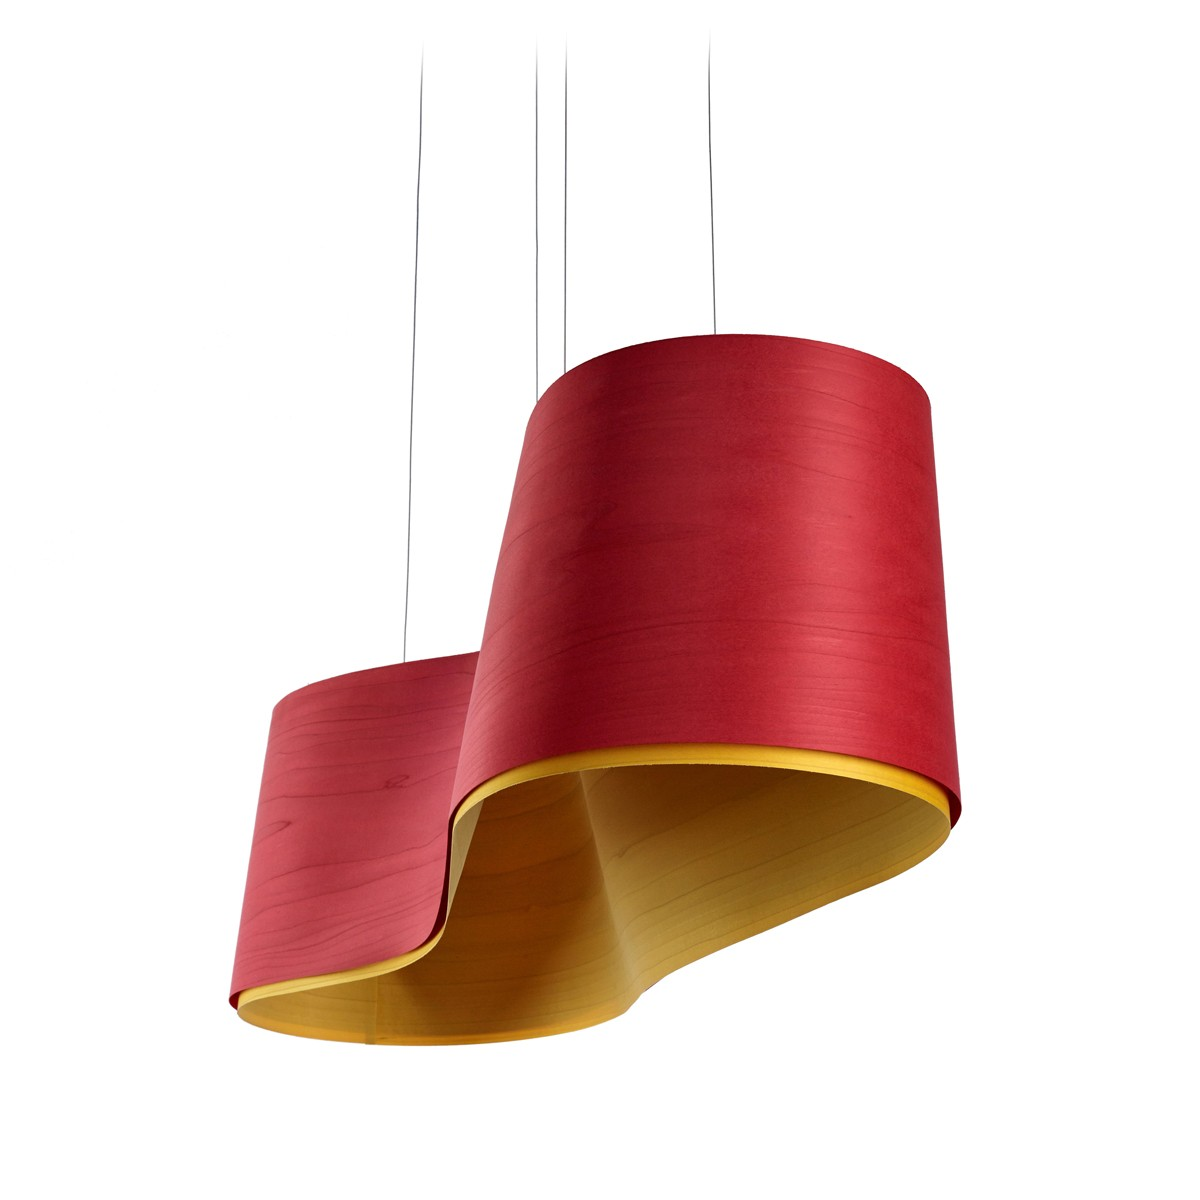 LZF Lamps New Wave LED Pendelleuchte, rot, innen: gelb